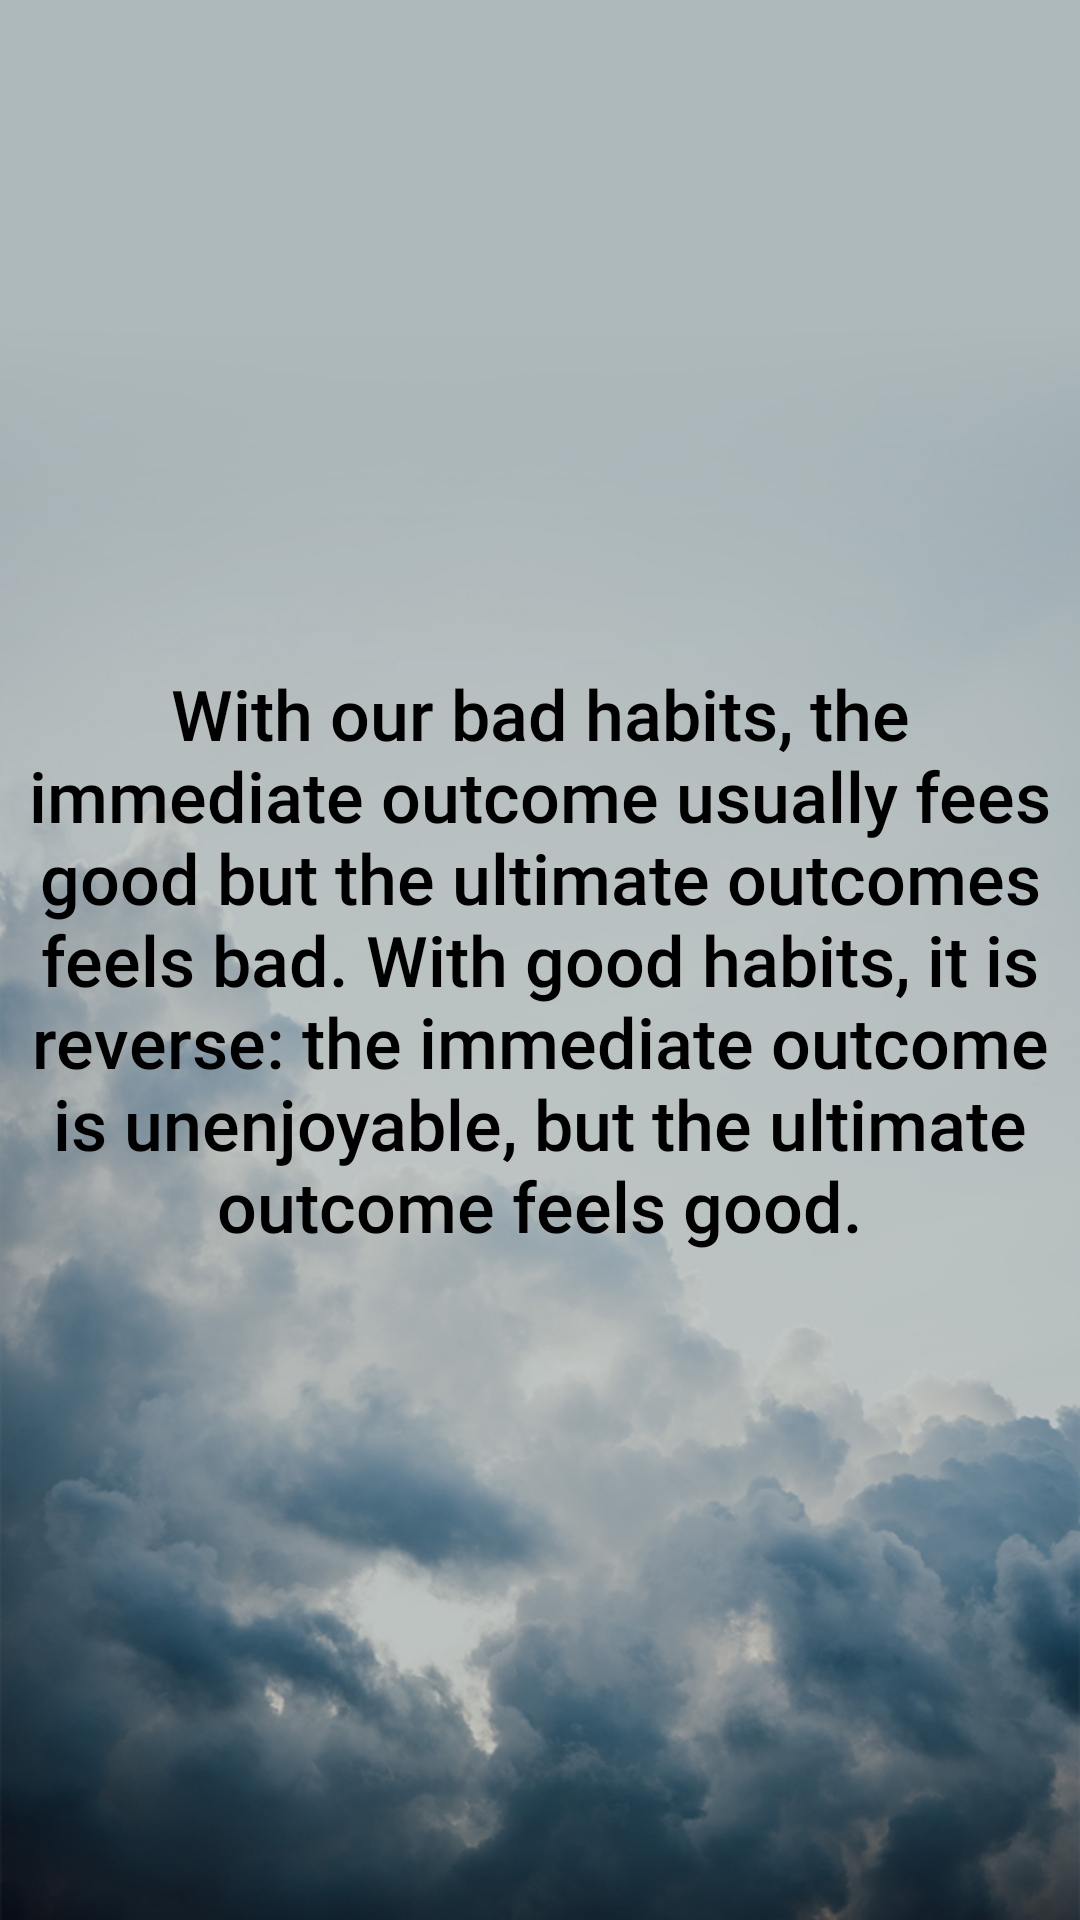 With our bad habits, the immediate outcome usually fees good but the ultimate outcomes feels bad. With good habits, it is reverse: the immediate outcome is unenjoyable, but the ultimate outcome feels good.